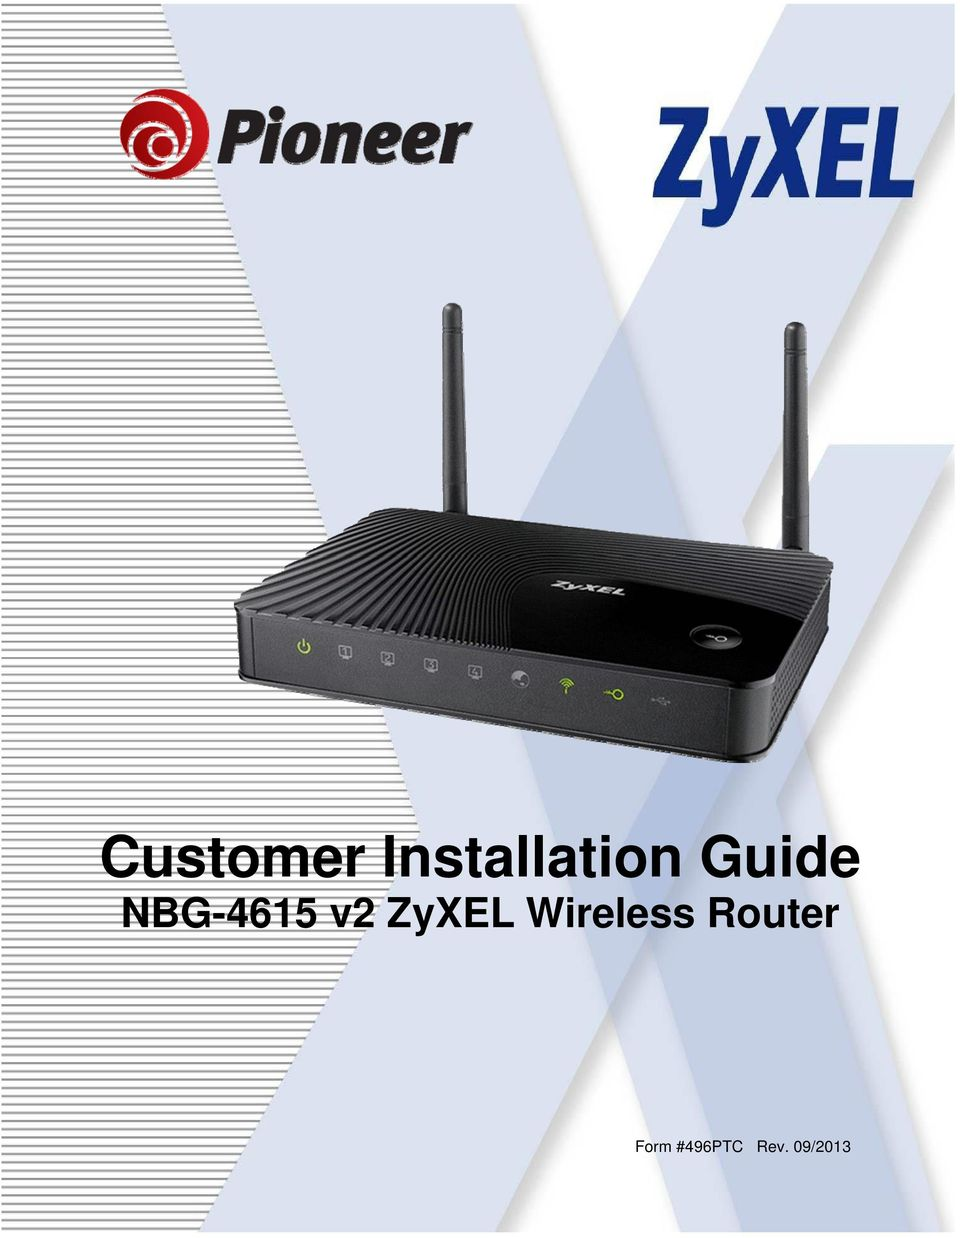 ZyXEL Wireless Router